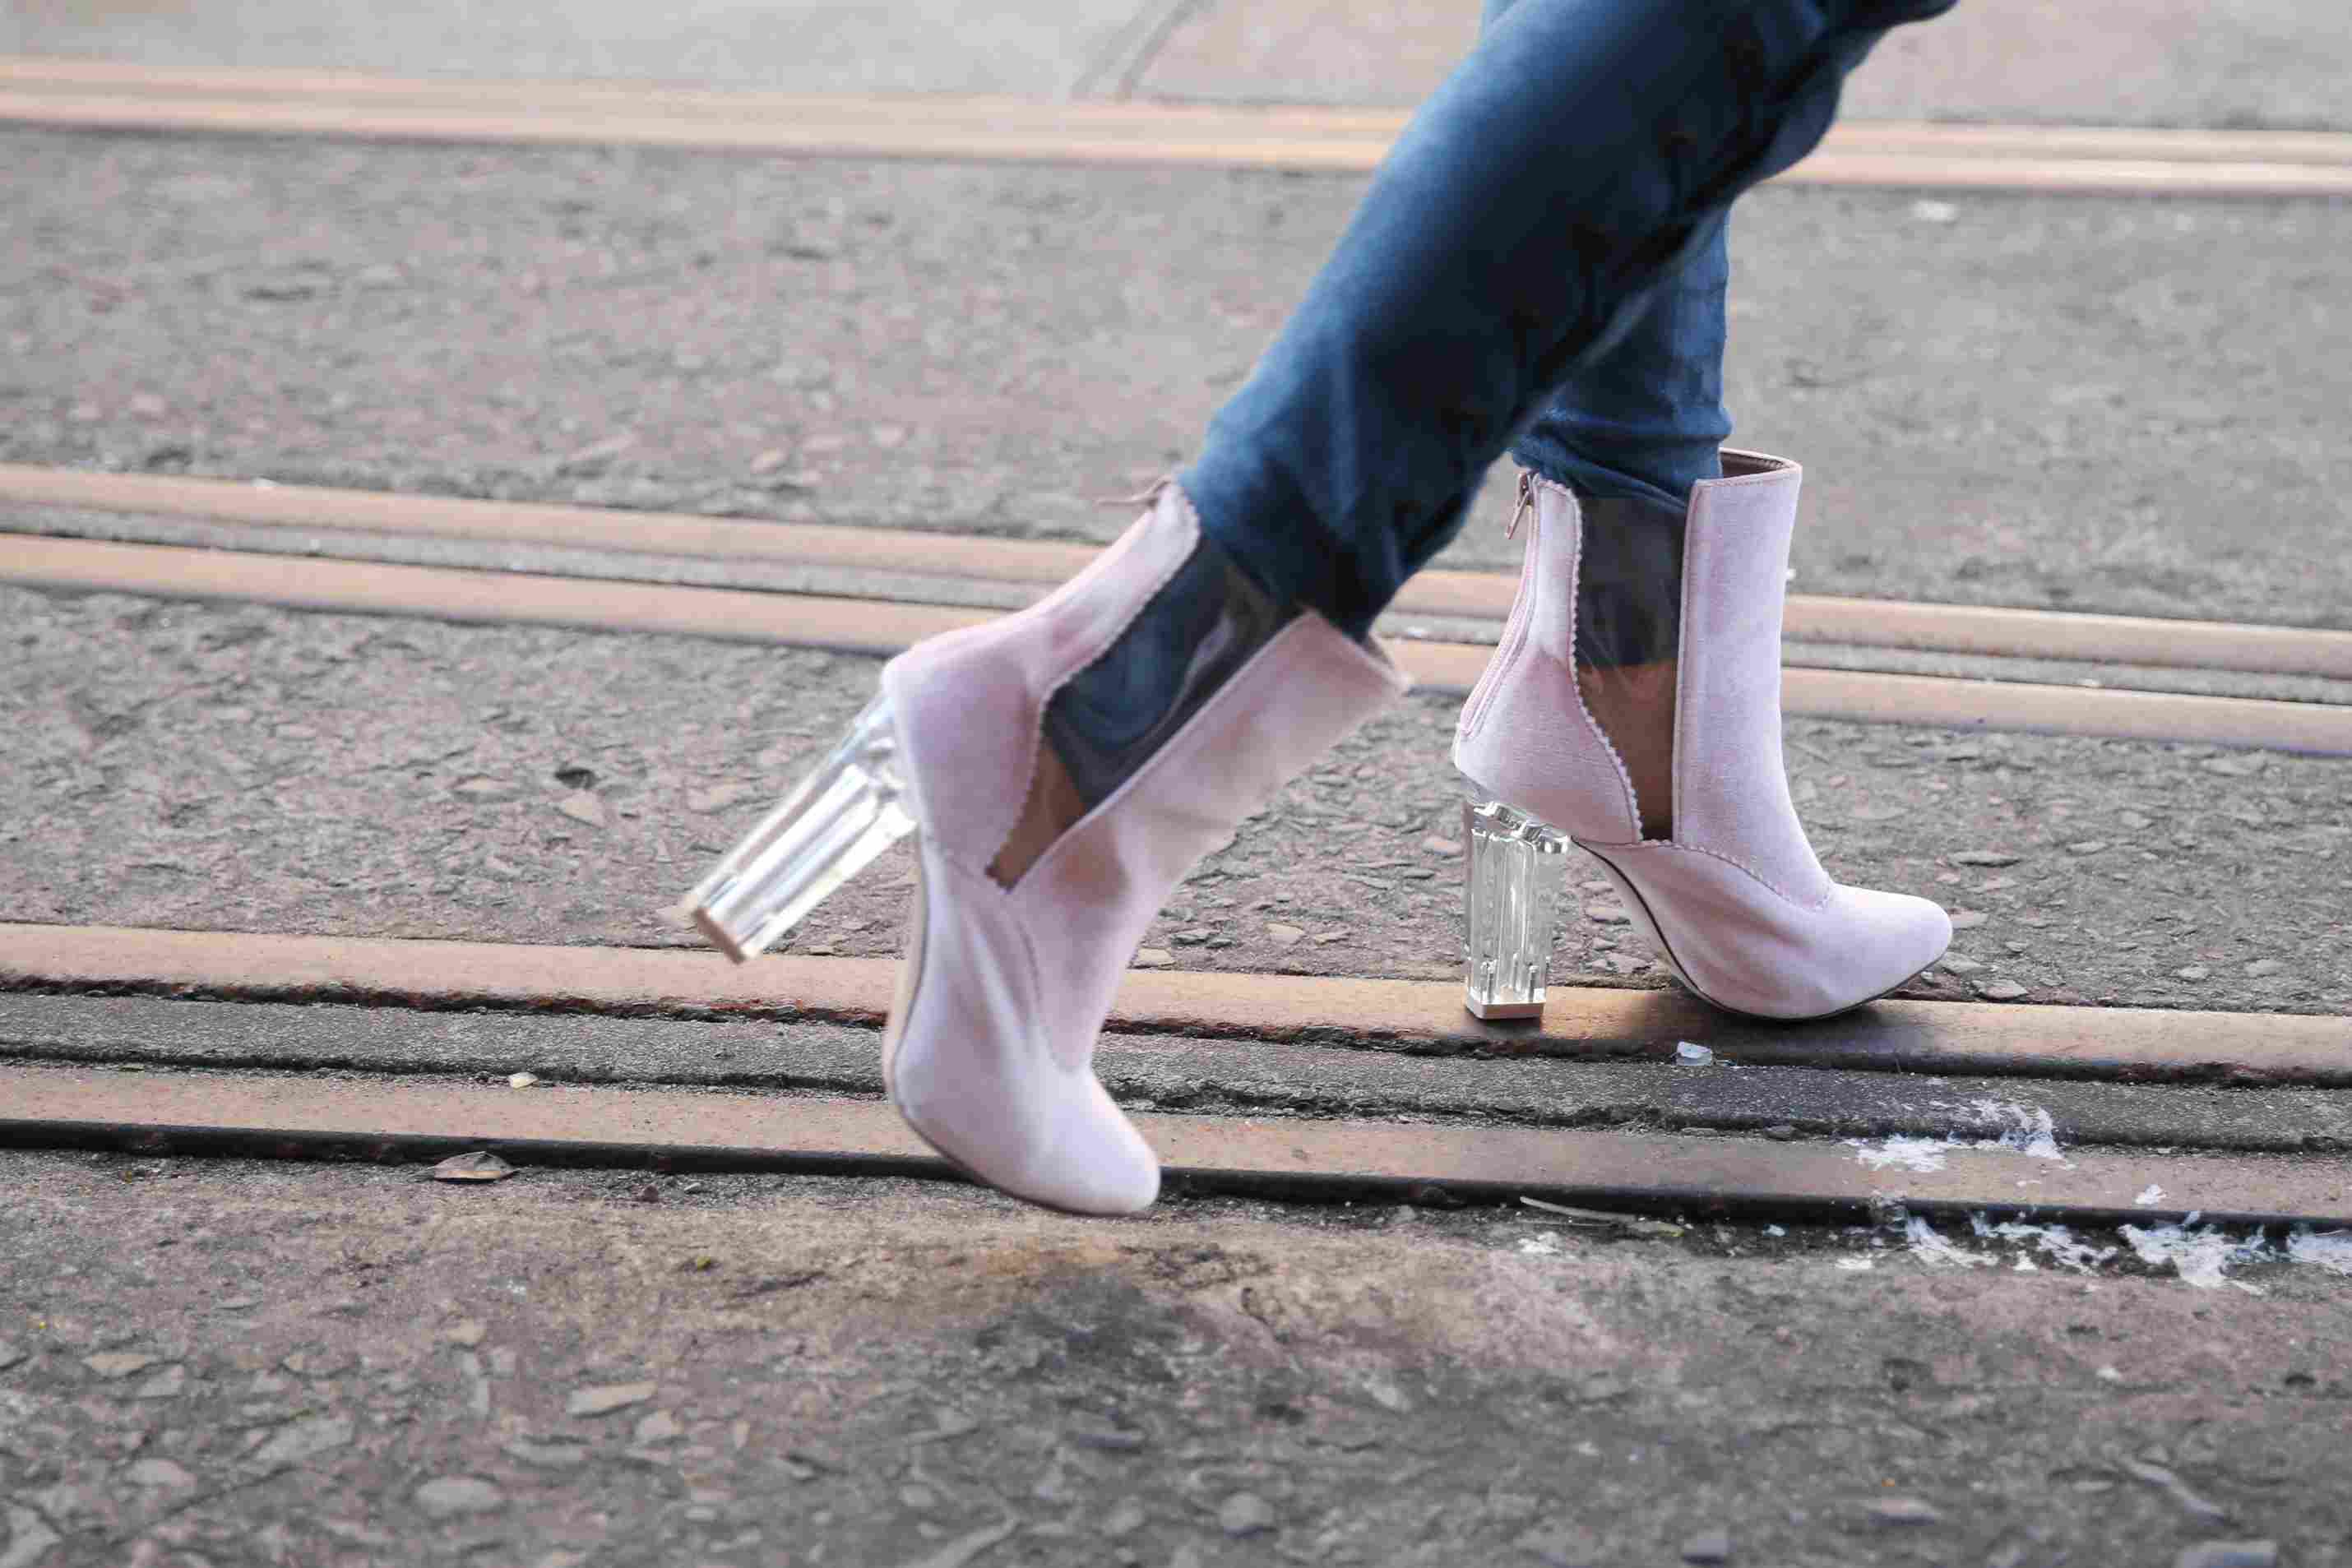 Woman's legs in skinny jeans and white ankle boots